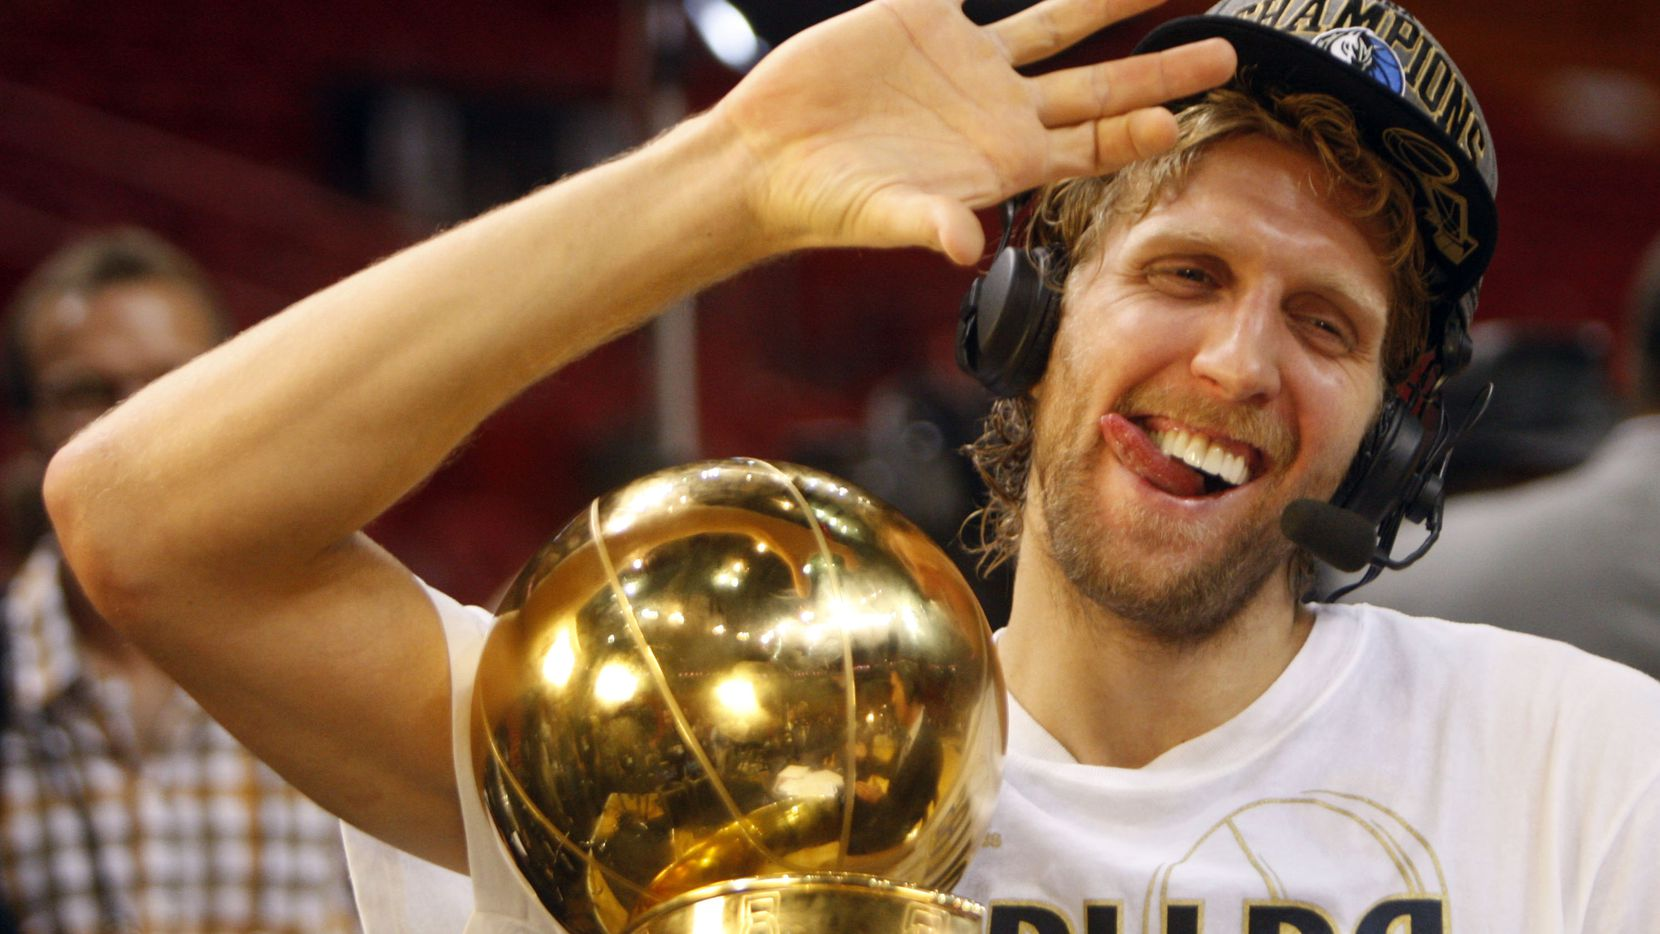 Dallas Mavericks power forward Dirk Nowitzki (41) shows how he drinks his champagne with his right hand after he was asked if he had any problems holding the bottle in celebration after winning in game six of the NBA Finals between the Miami Heat and the Dallas Mavericks at the American Airlines Arena in Miami, Florida, June 12, 2011.